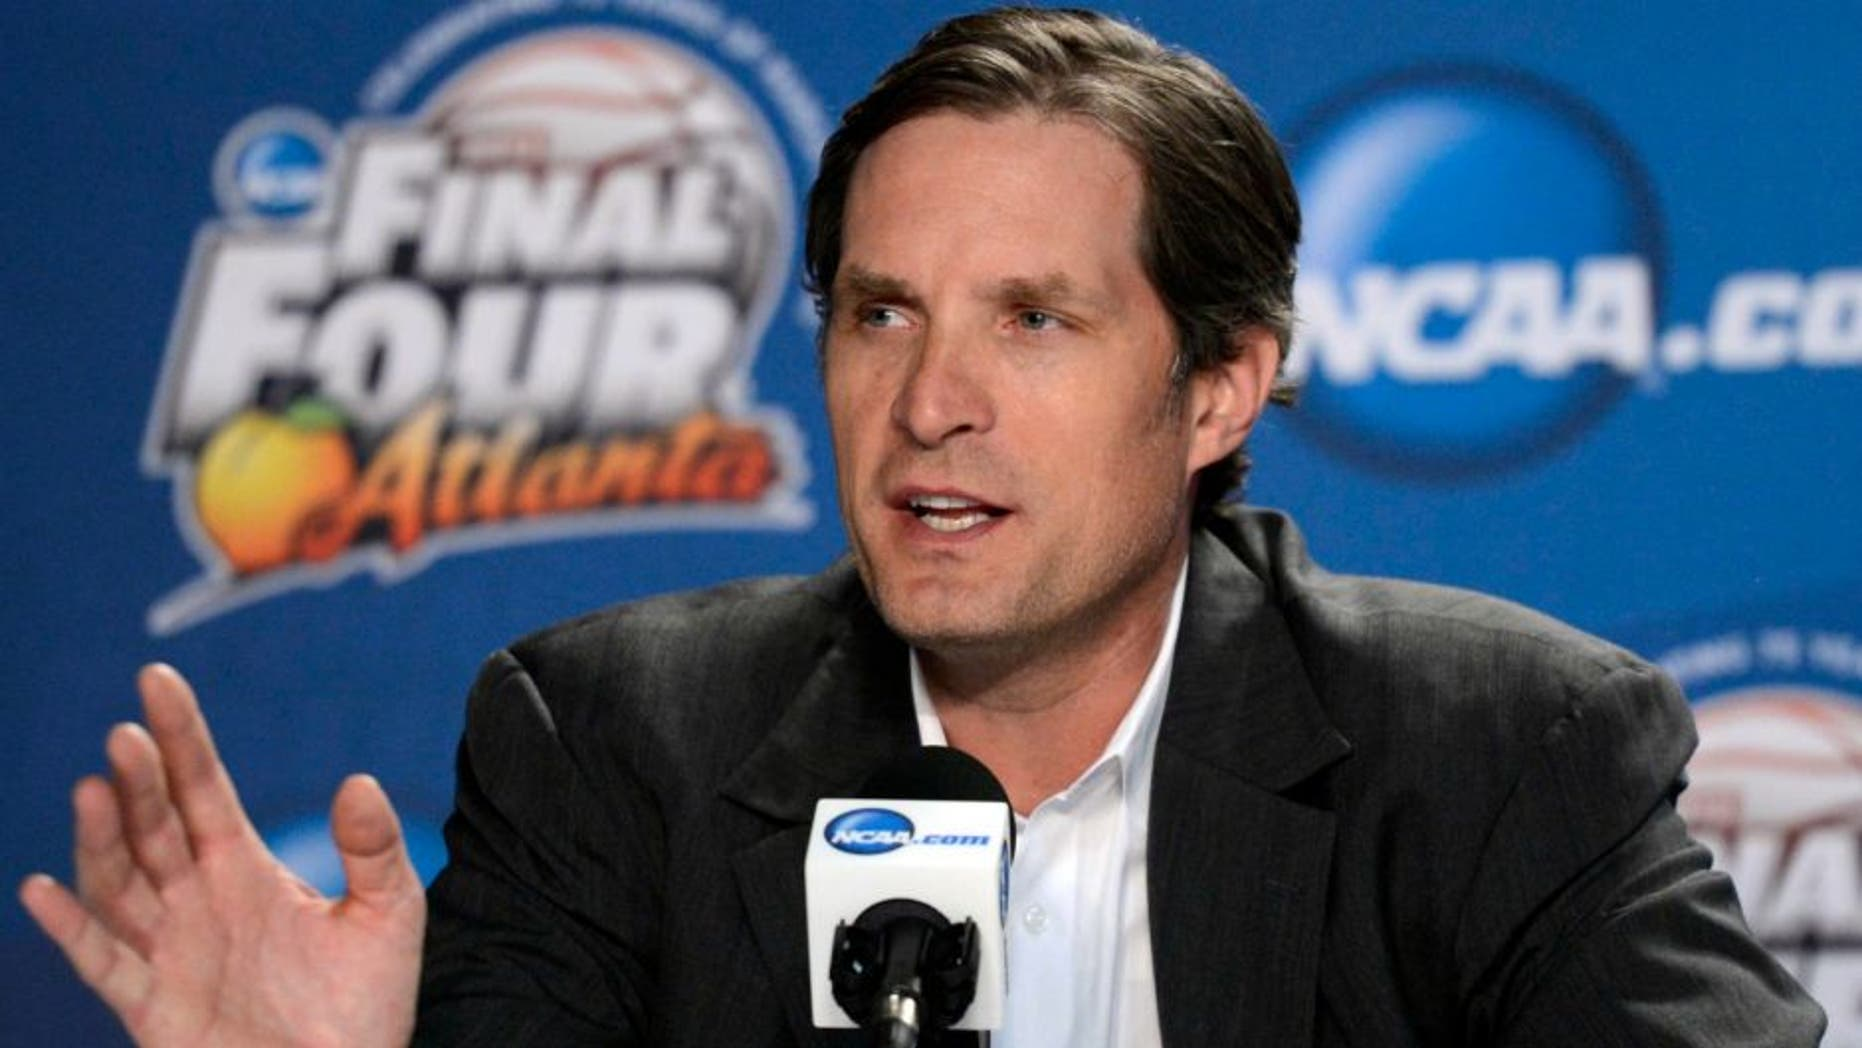 Apr 5, 2013; Atlanta, GA, USA; NCAA basketball former player Christian Laettner speaks during the 75 years of March madness press conference in preparation for the Final Four of the 2013 NCAA basketball tournament at the Georgia Dome. Mandatory Credit: Richard Mackson-USA TODAY Sports